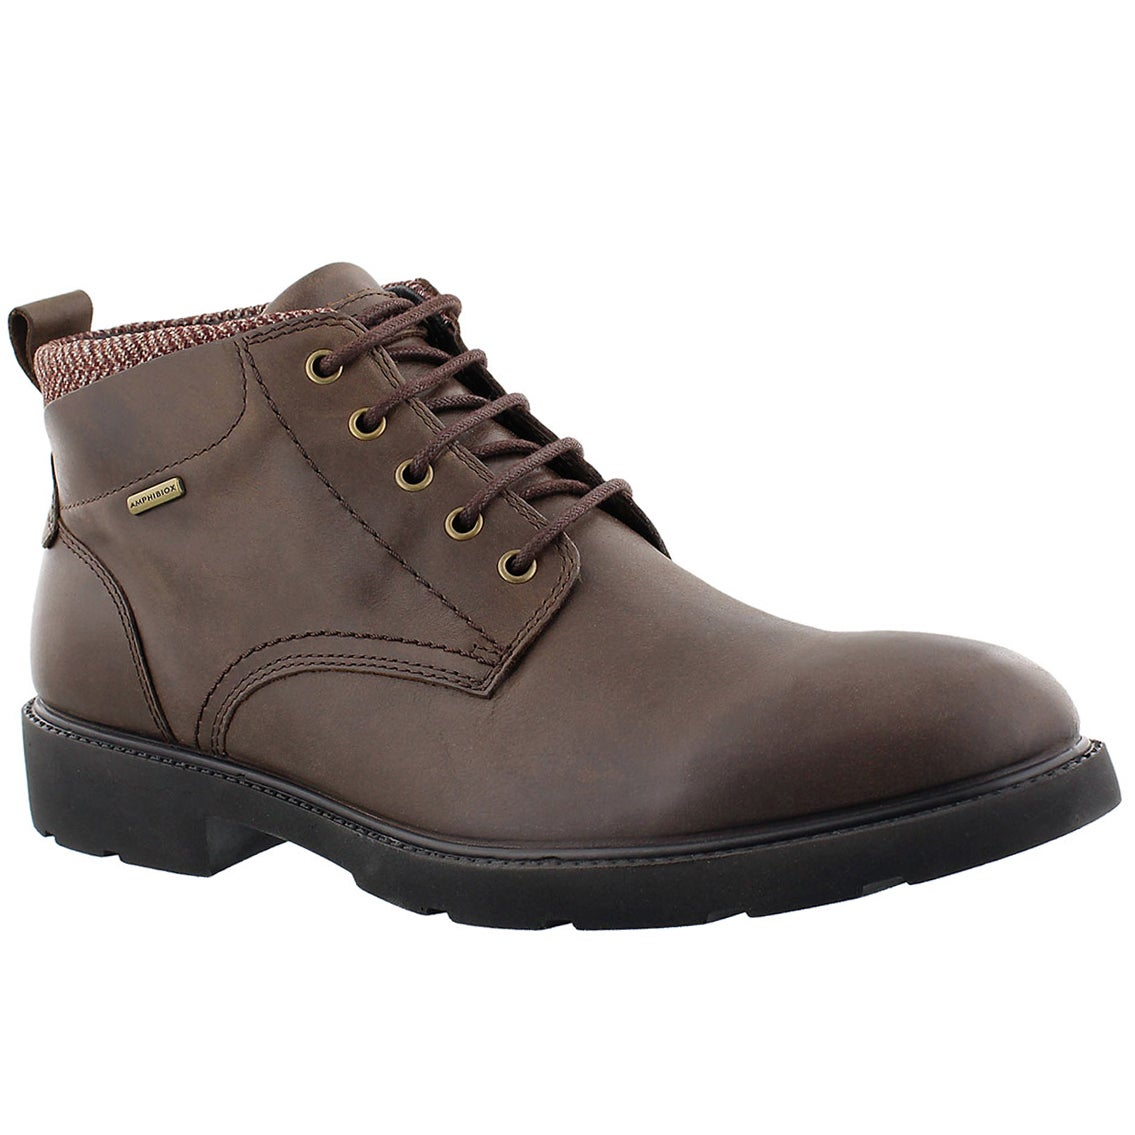 Mns Rubbiano ABX ches laceup casual shoe